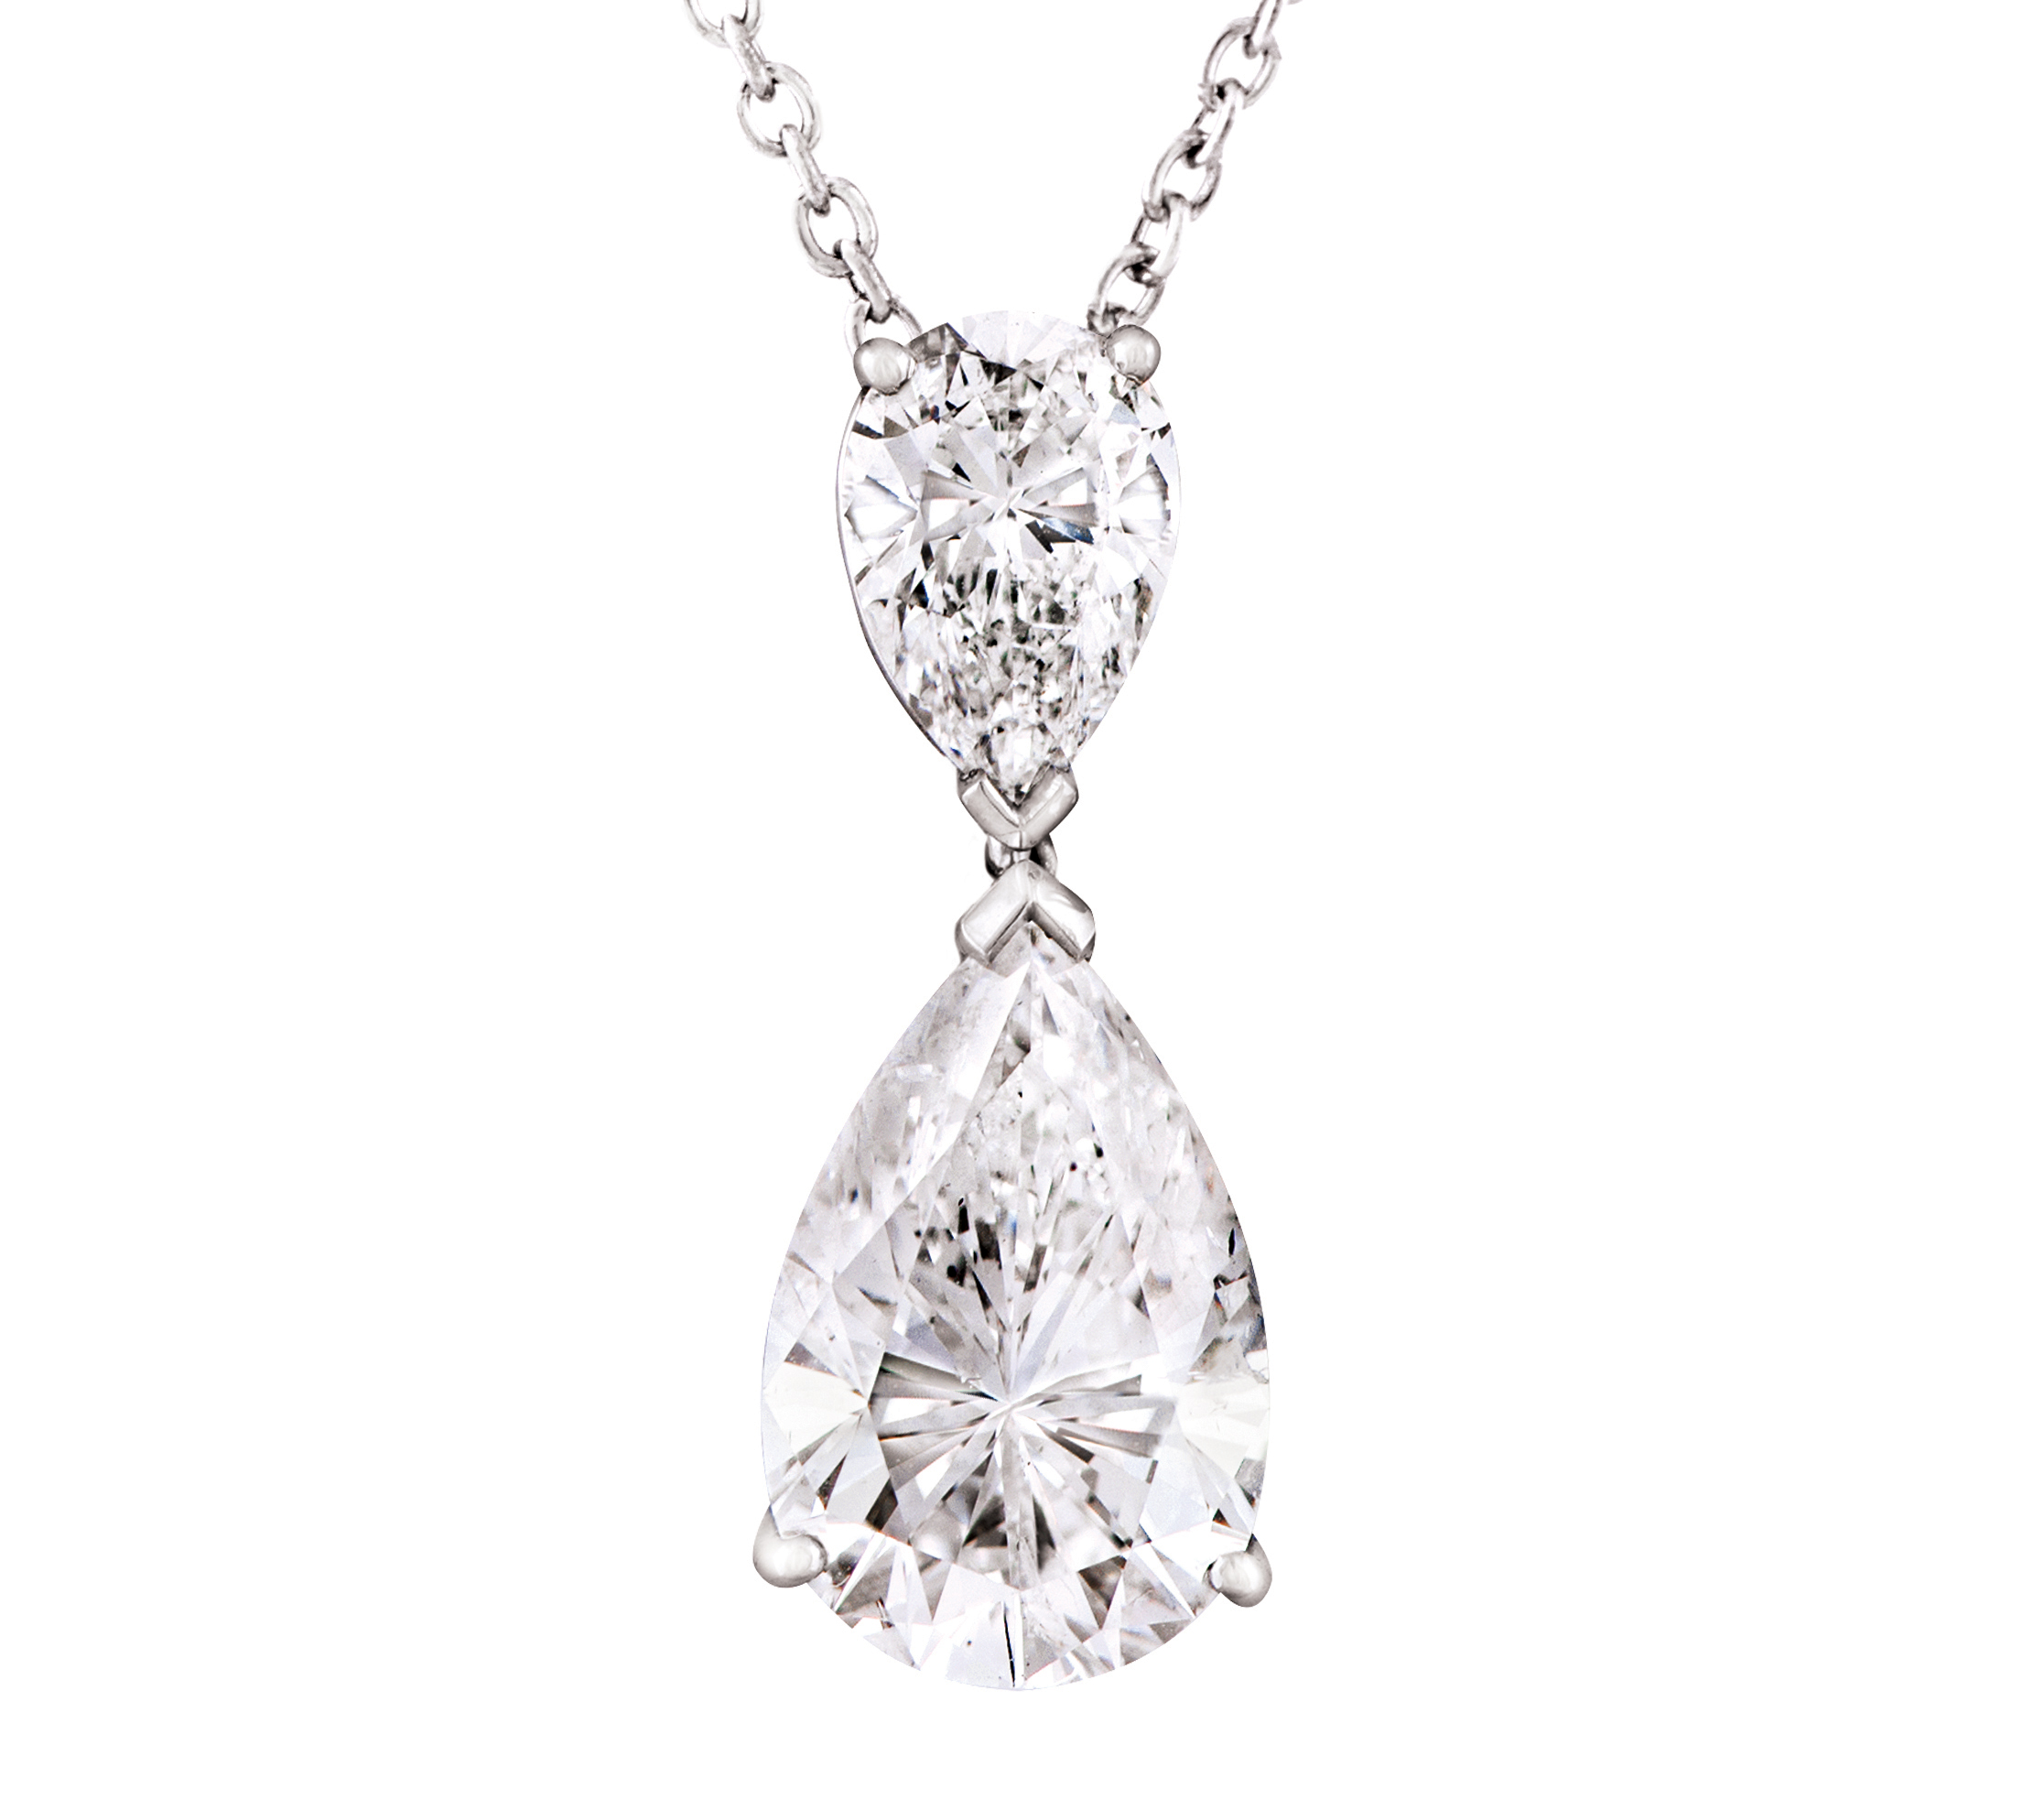 ceiling a engineered diamonds perfectly high each classic thoughtful of on uncomplicated crown by prong beautiful string accentuated polish elegant diamond an rounded single product and